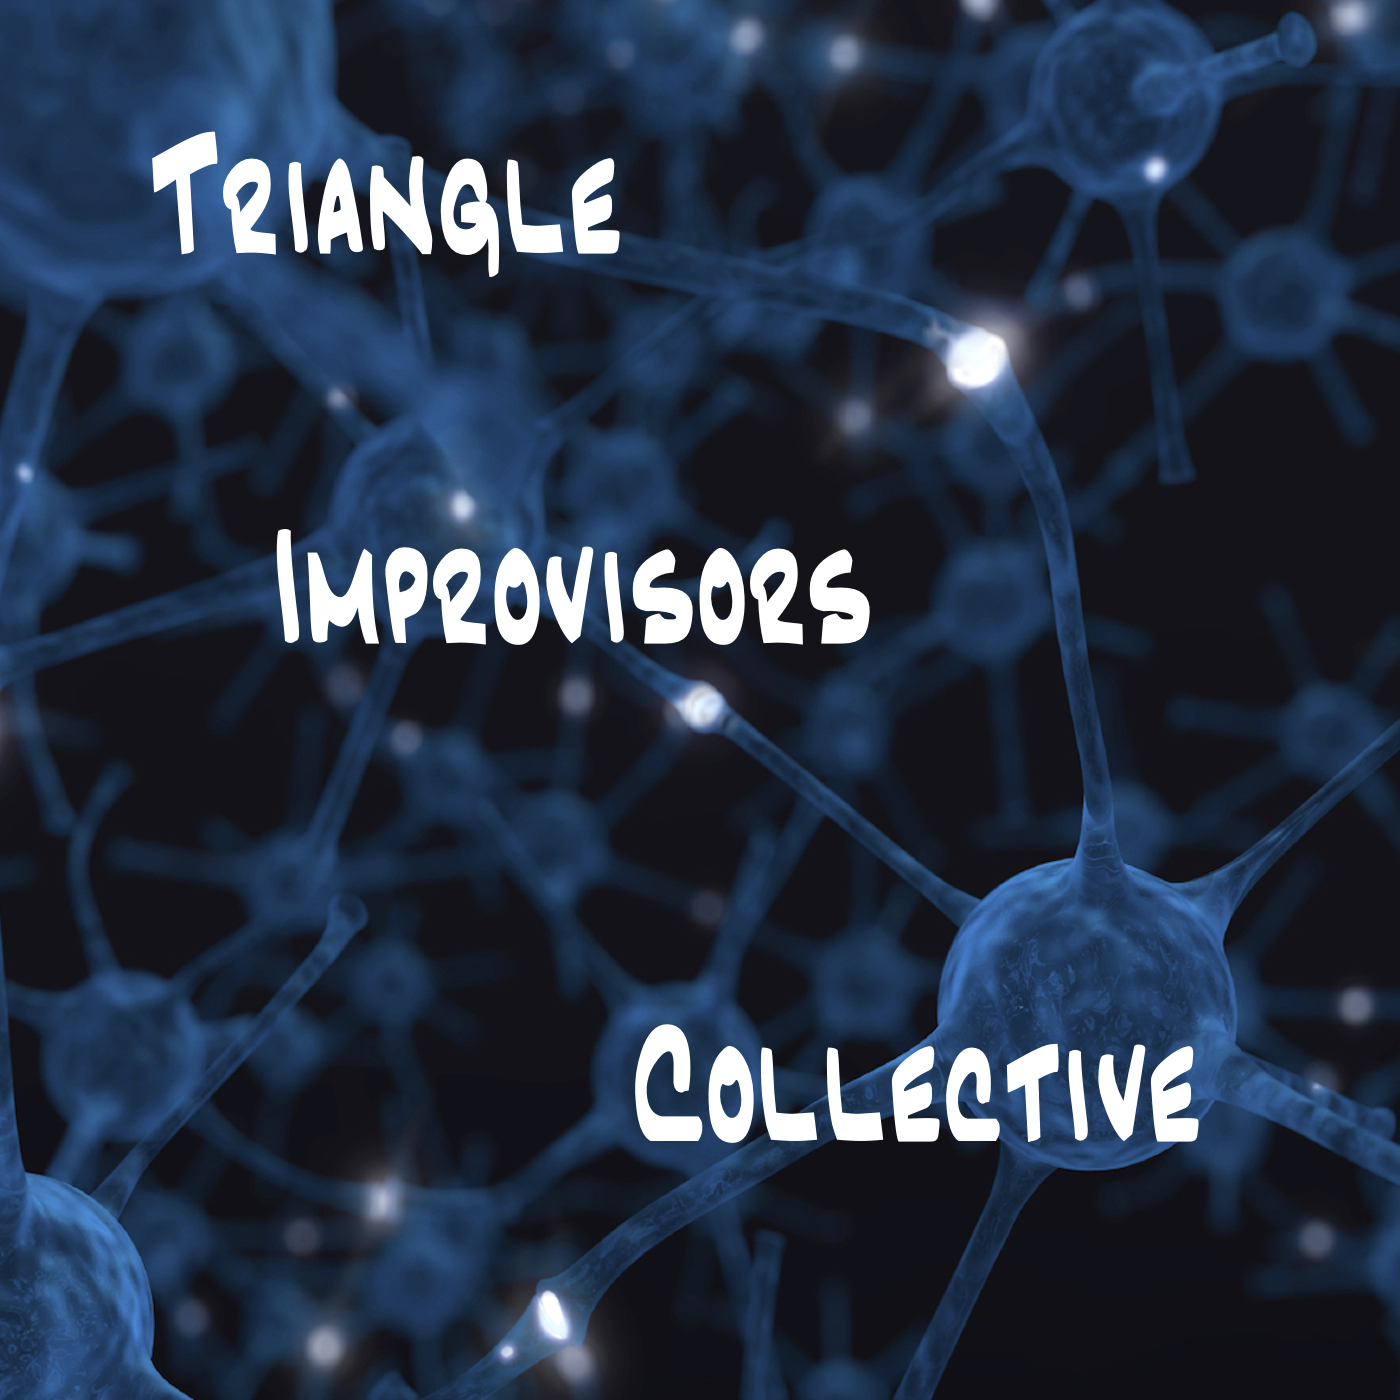 Triangle Improvisors Collective